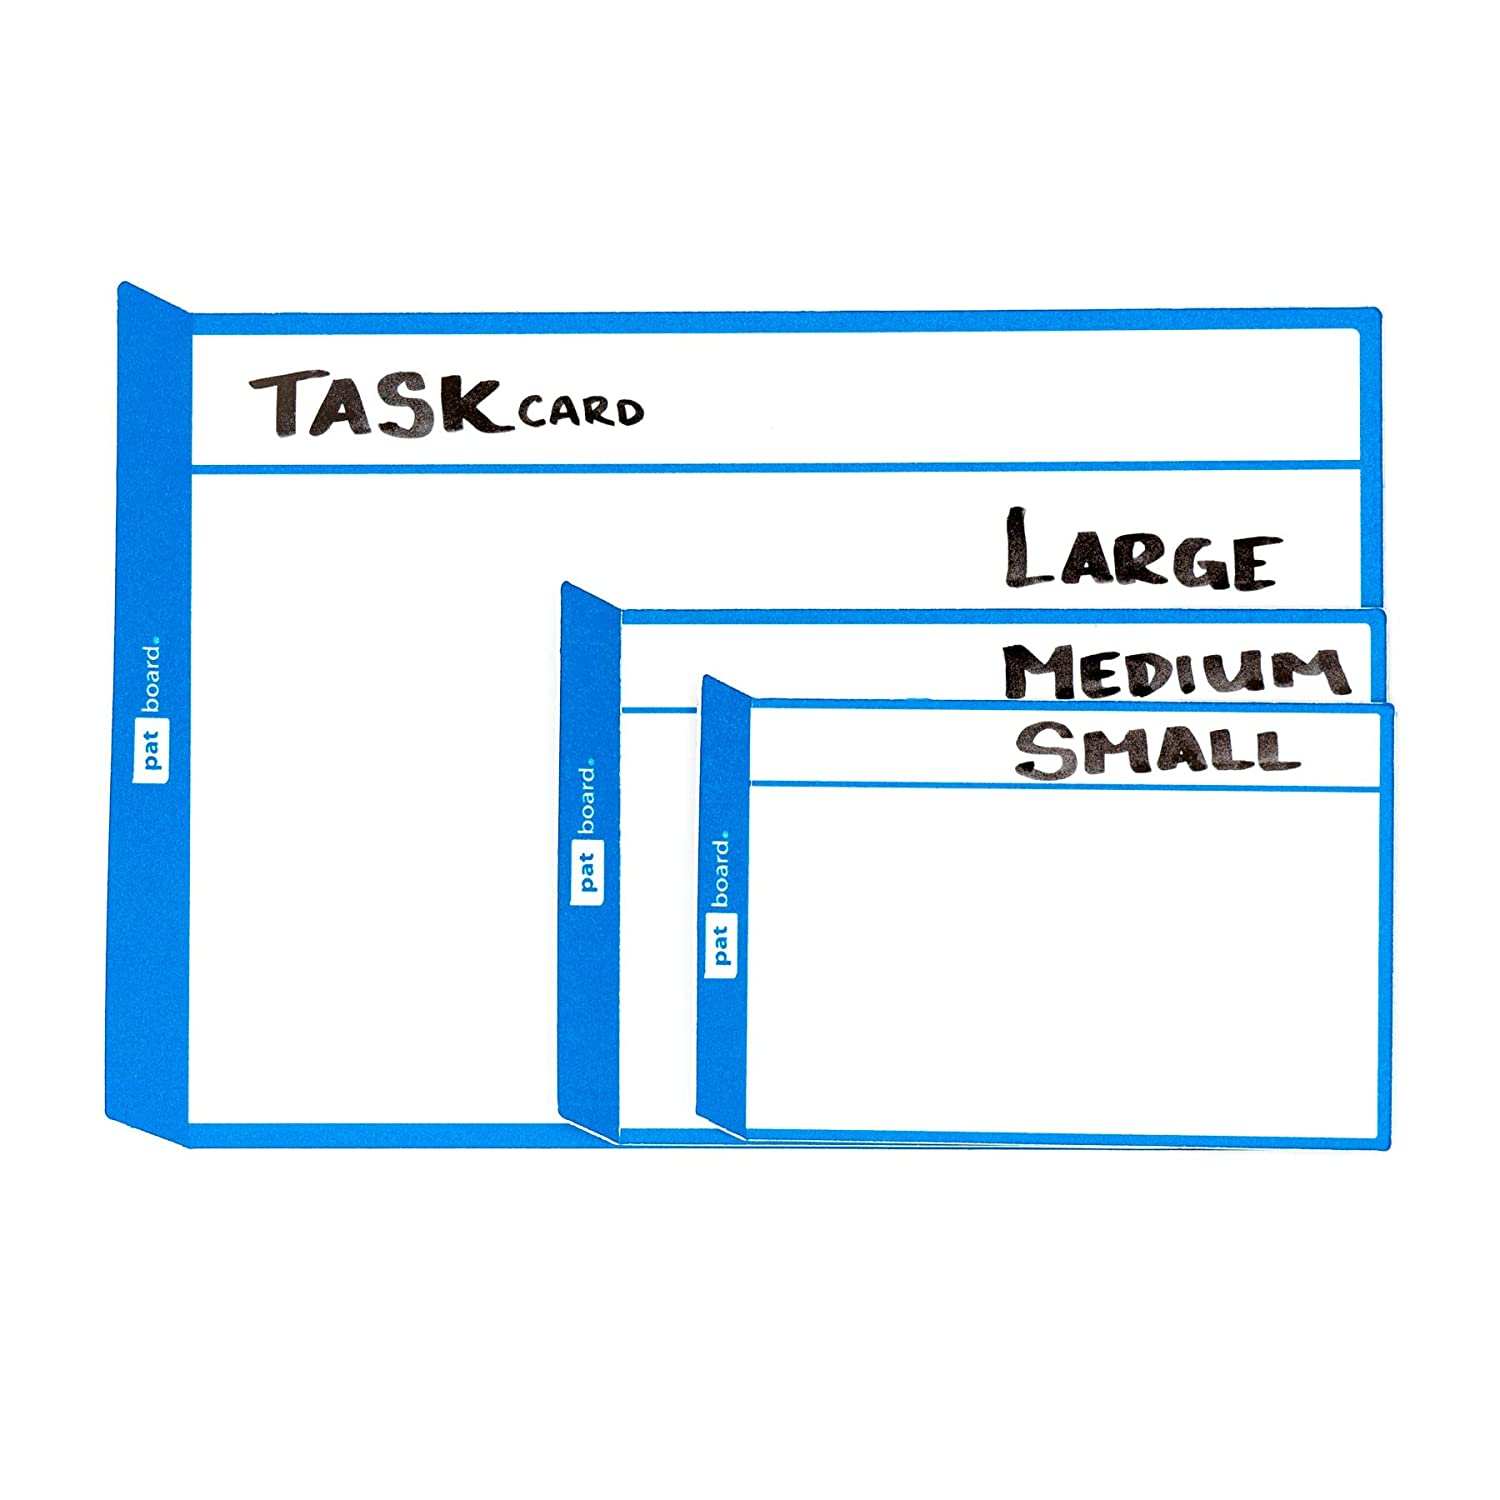 grand Bleu 8 TASKcards L Magnetic Notes Scrum Kanban Aimants from PATboard